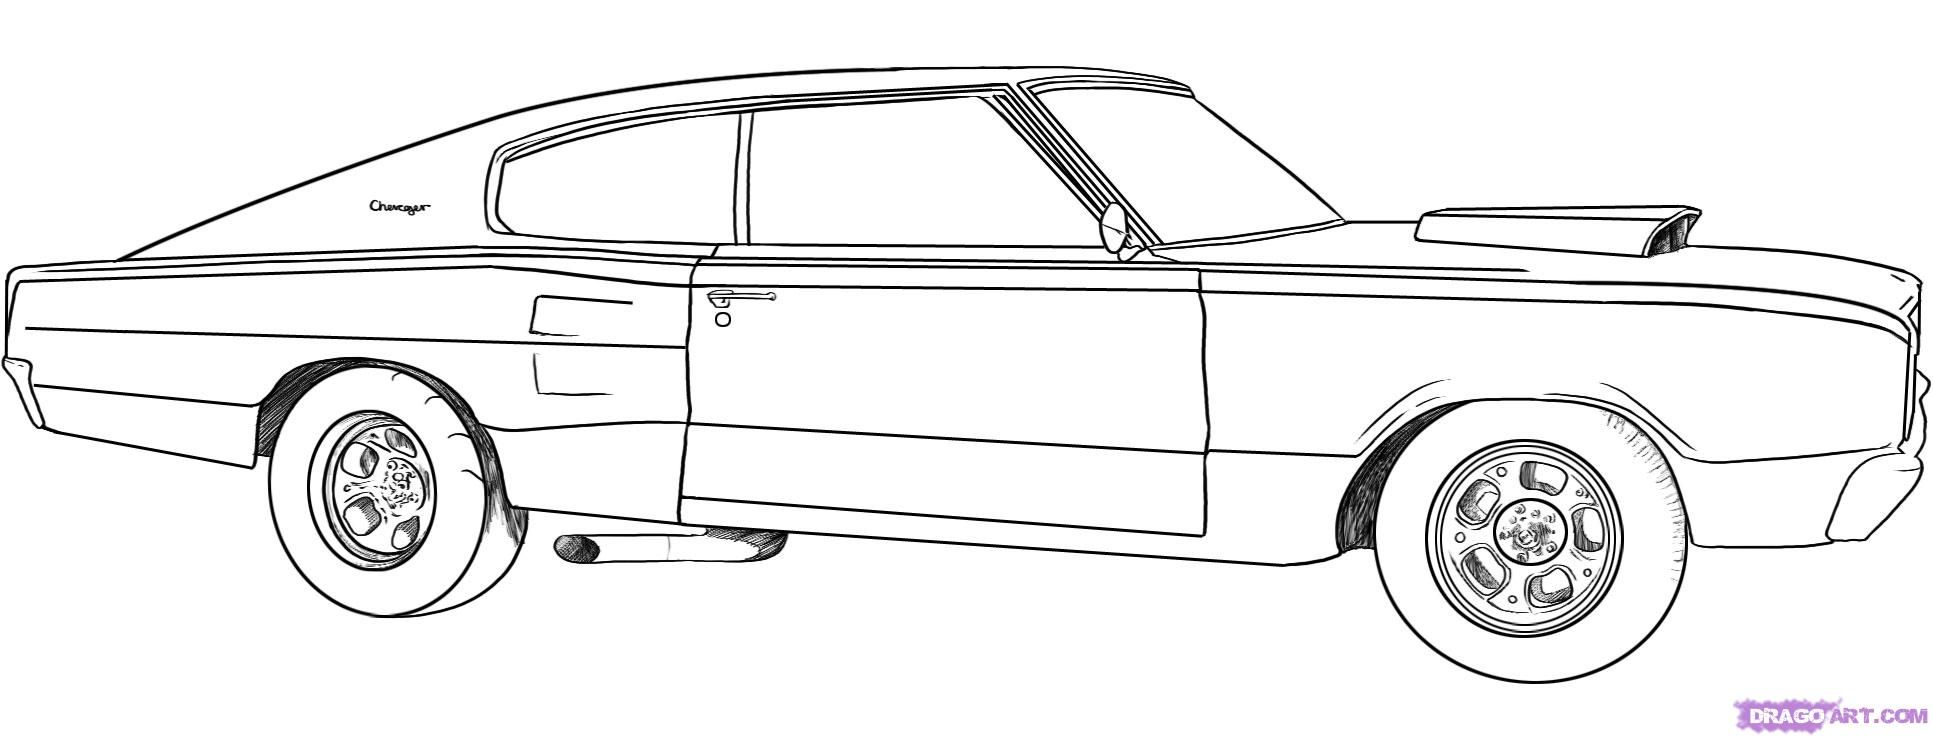 Changller Coloring Pages Dodge Challenger Coloring Page Car